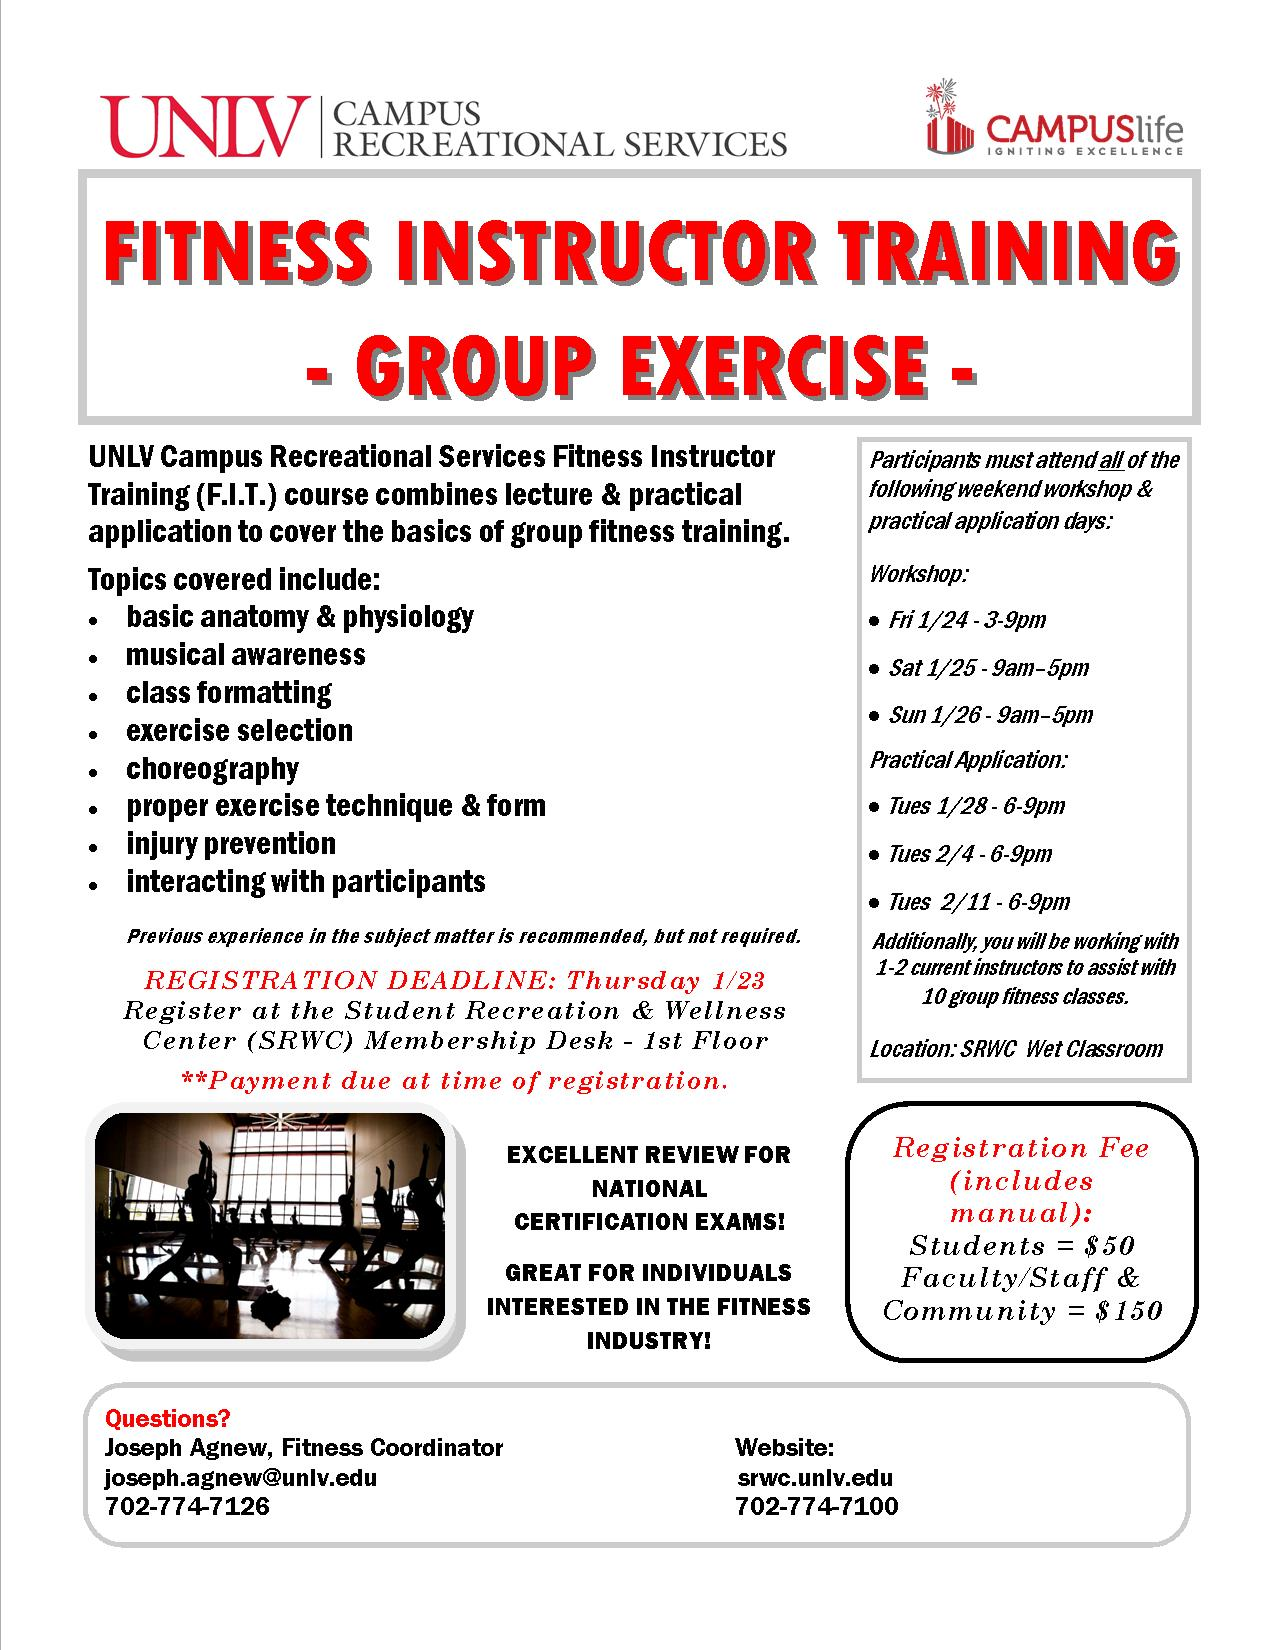 Fitness Instructor Training - Group Exercise